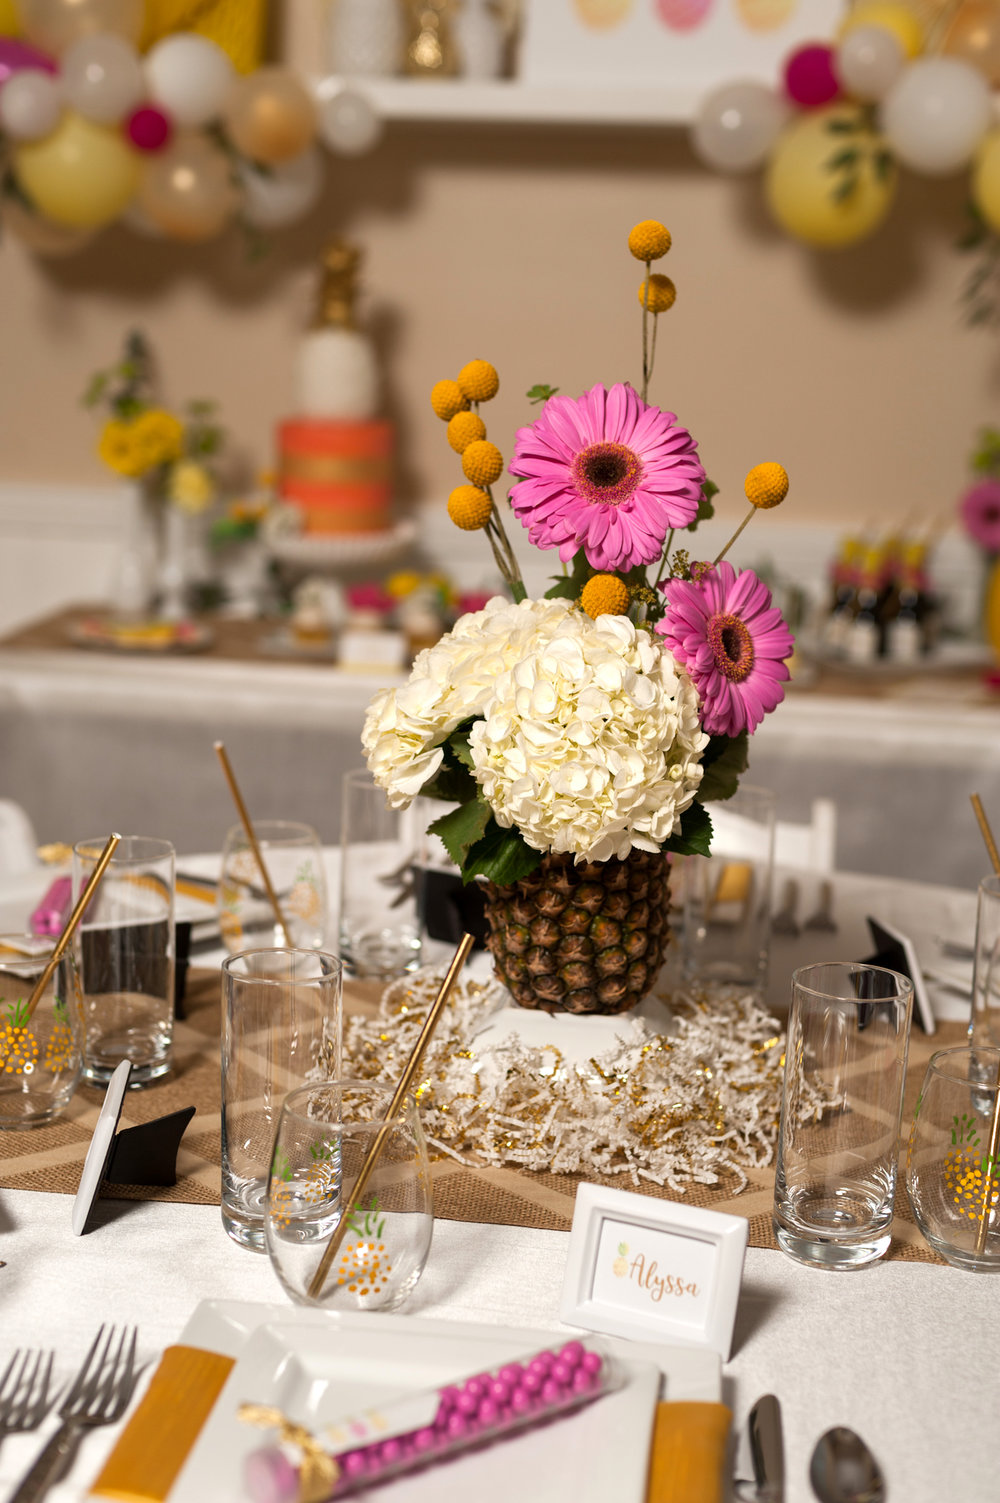 pineapple-bridal-shower-centerpiece-091316.jpg